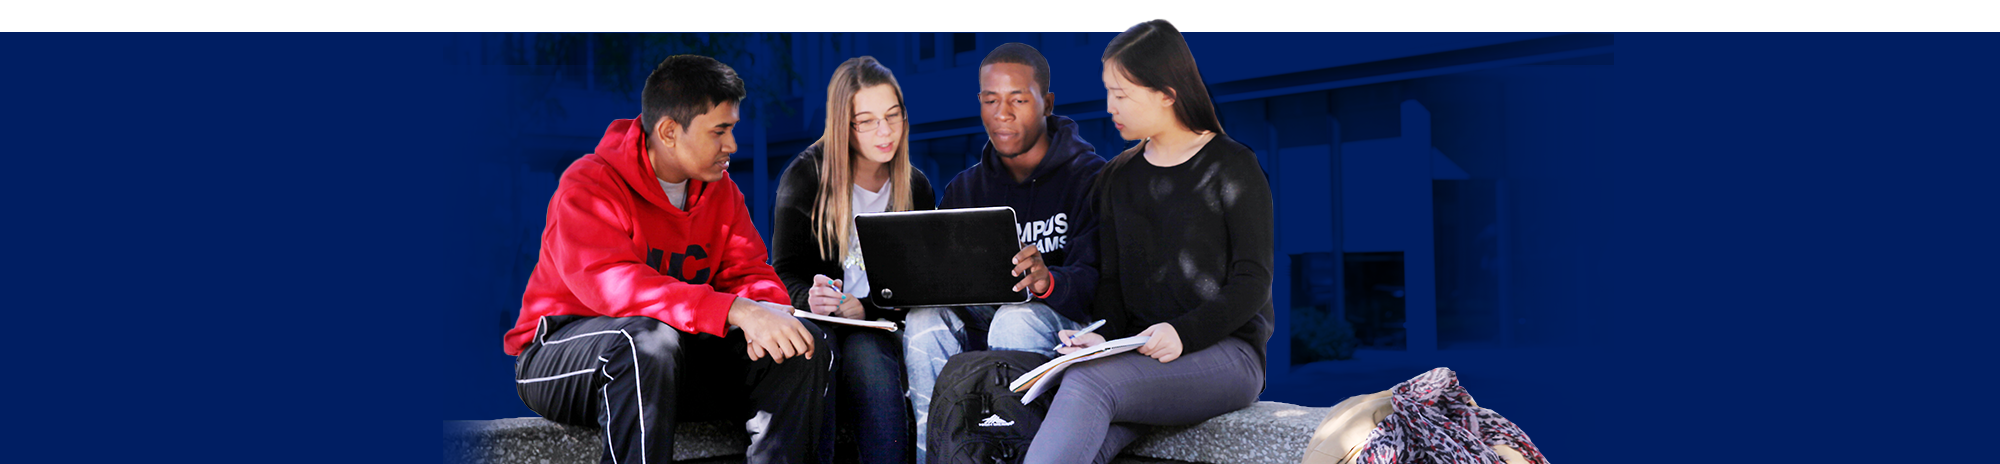 Three students sitting down and huddled around a laptop